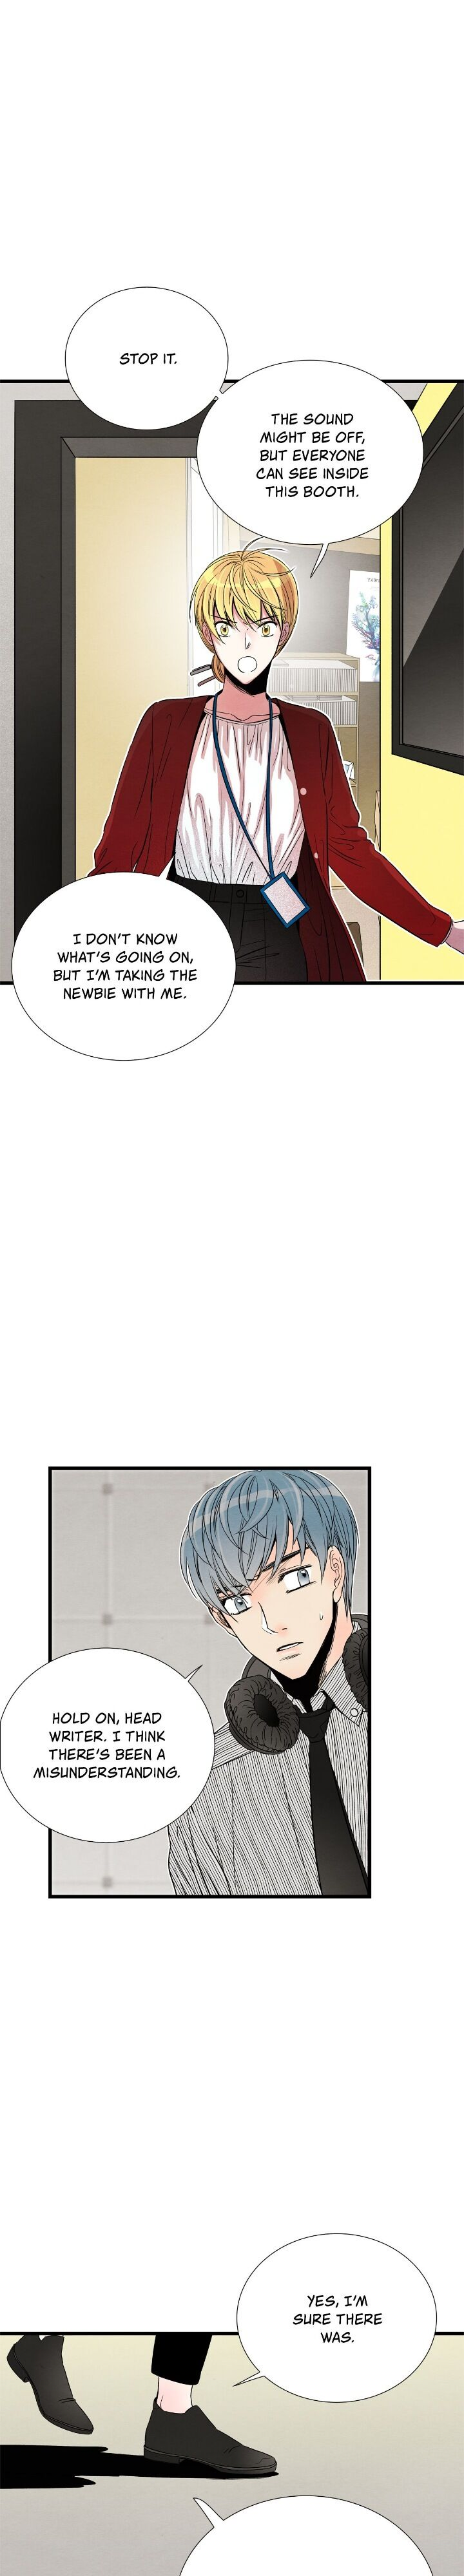 Time Share House - chapter 59 - #3